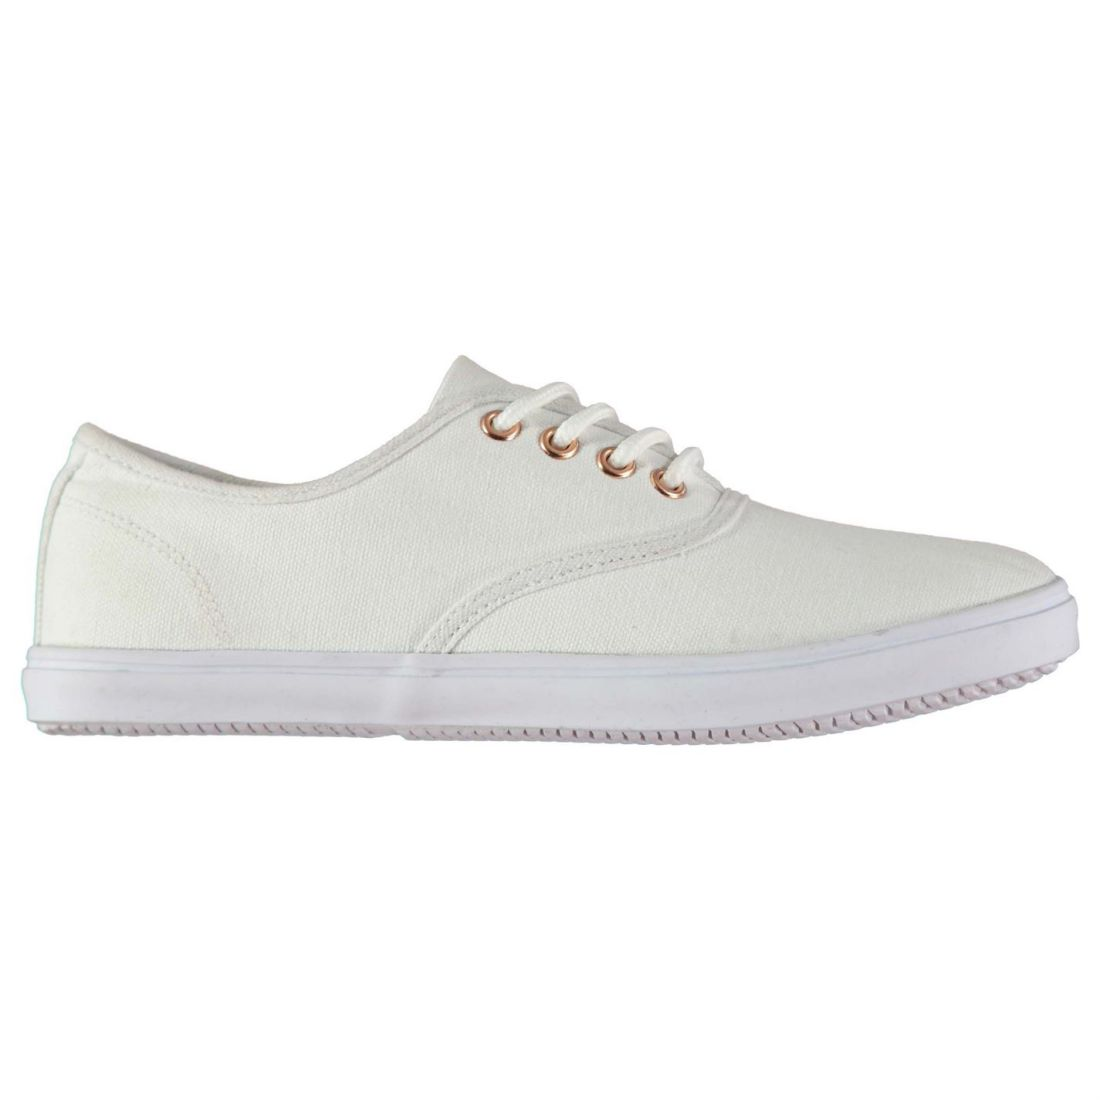 0fa9109f76 Image is loading Miso-Womens-Taylor-Plimsolls-Shoes-Trainers-Sneakers-Canvas -